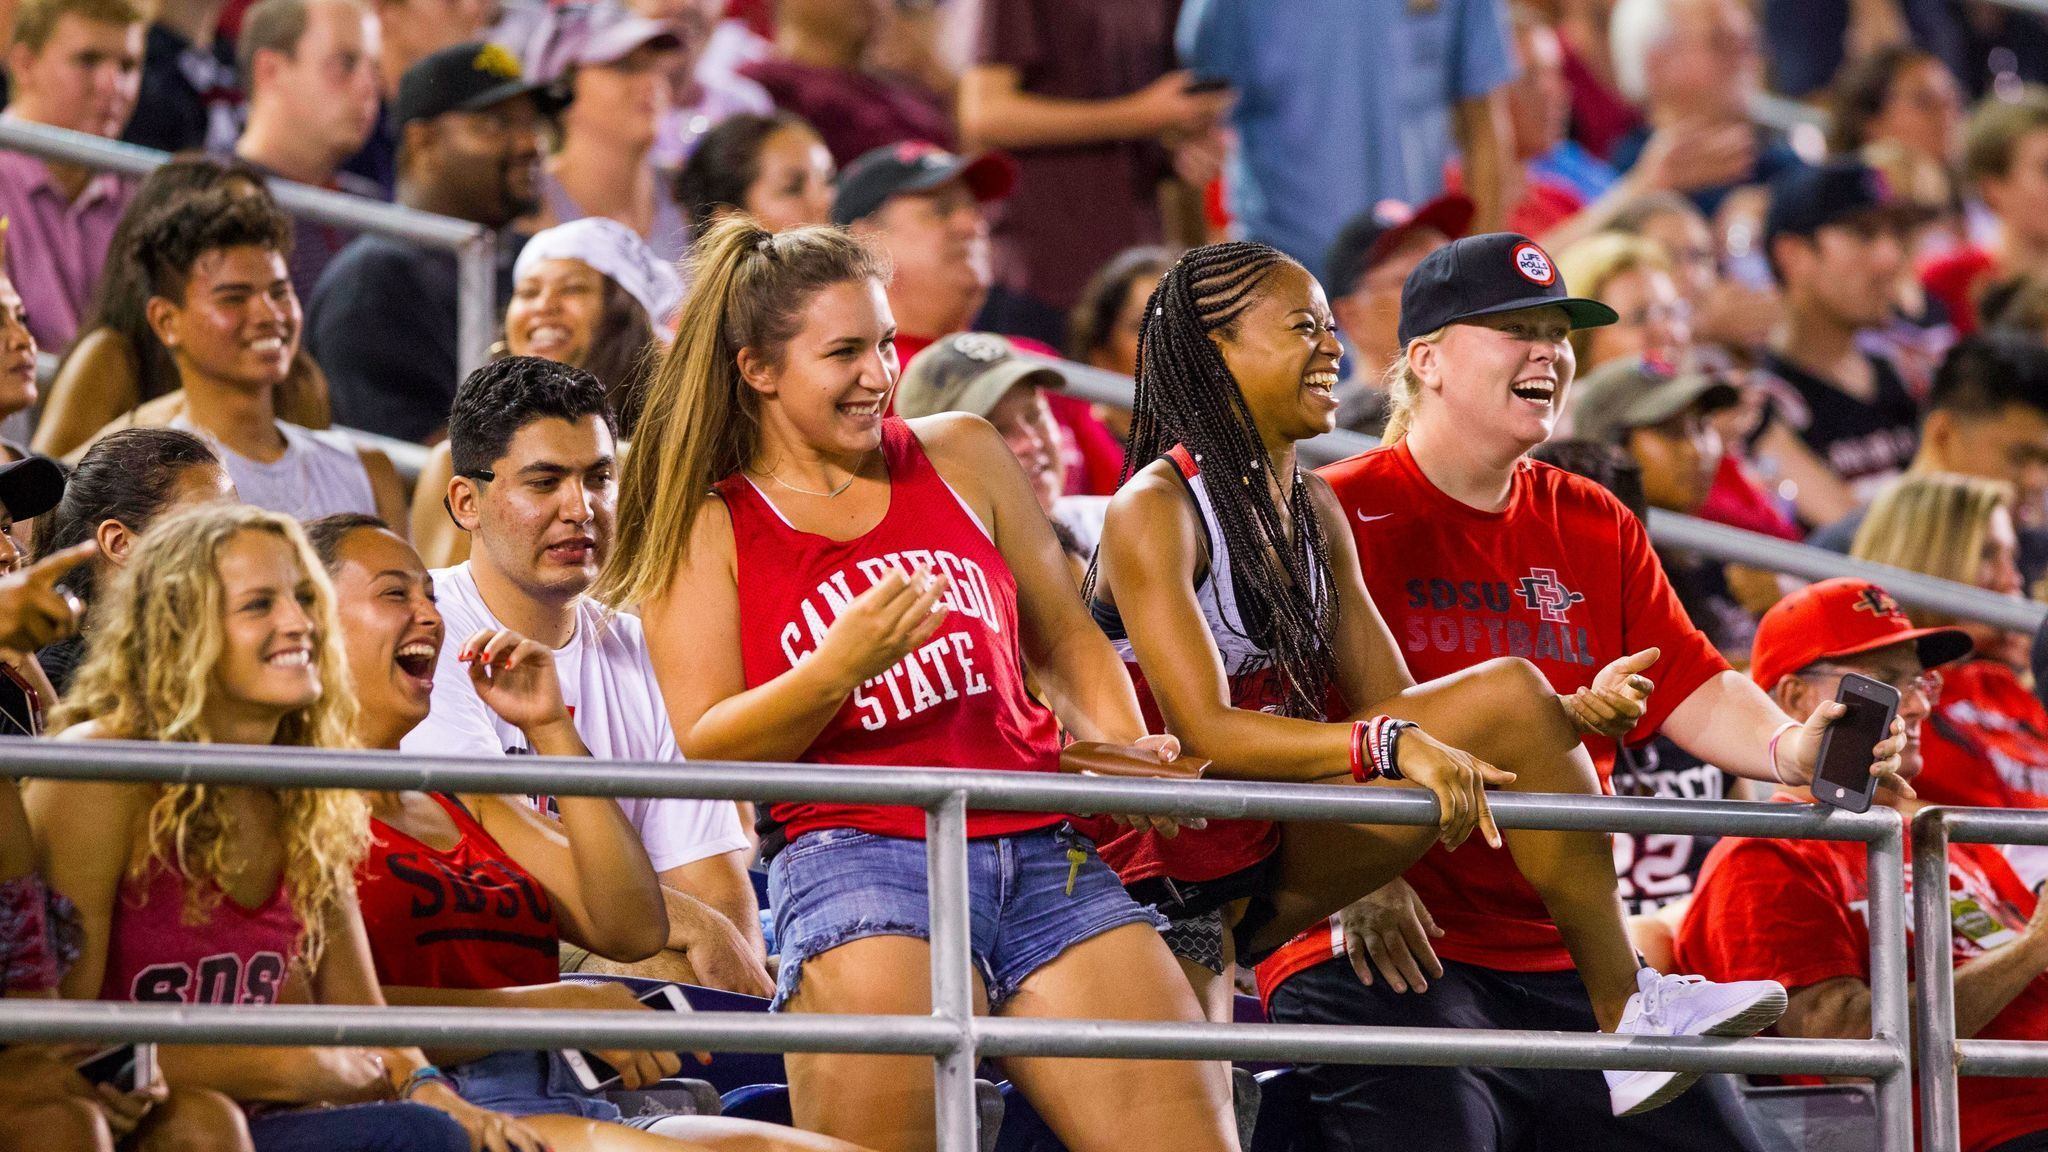 Sd-sp-azfoot-attendance-for-stanford-0913